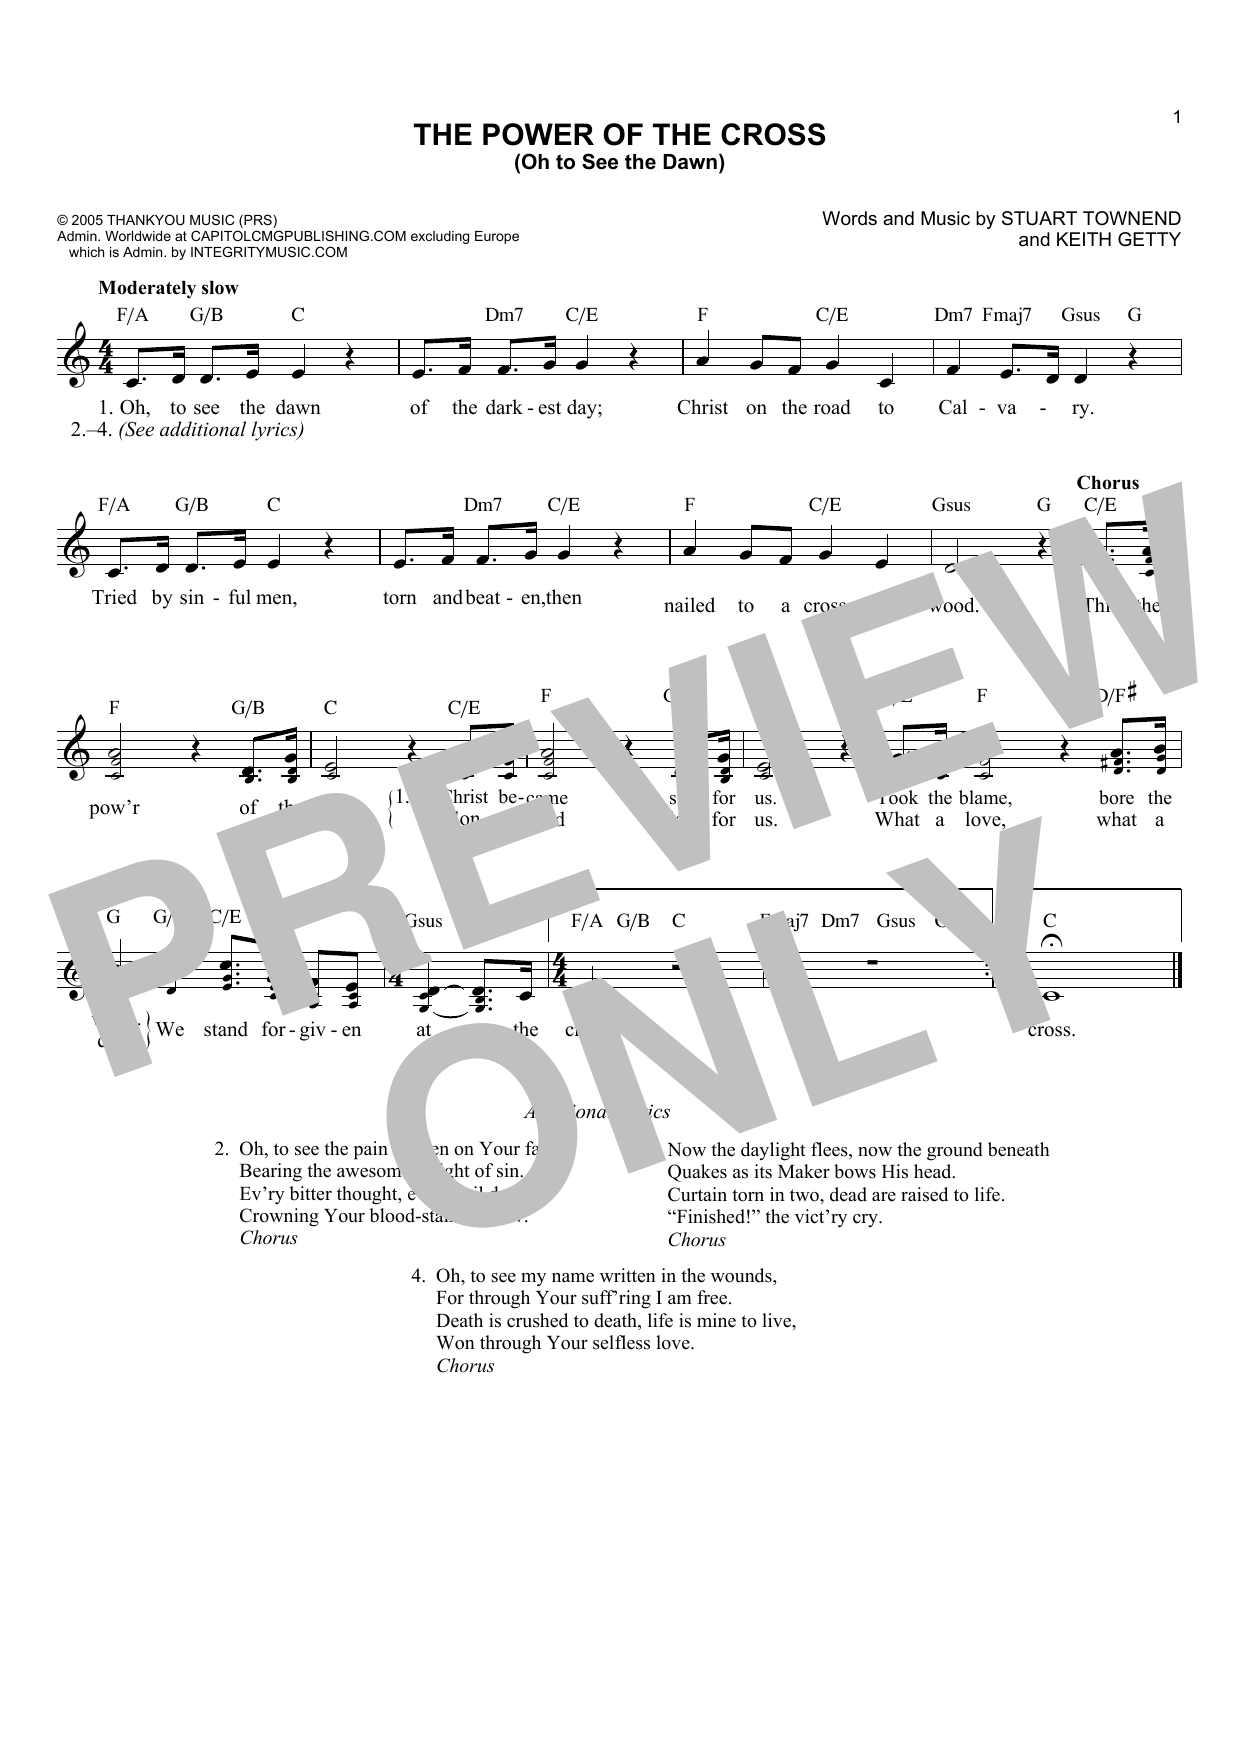 Keith Getty The Power Of The Cross Oh To See The Dawn Sheet Music Notes Chords Download Printable Melody Line Lyrics Chords Sku 178879